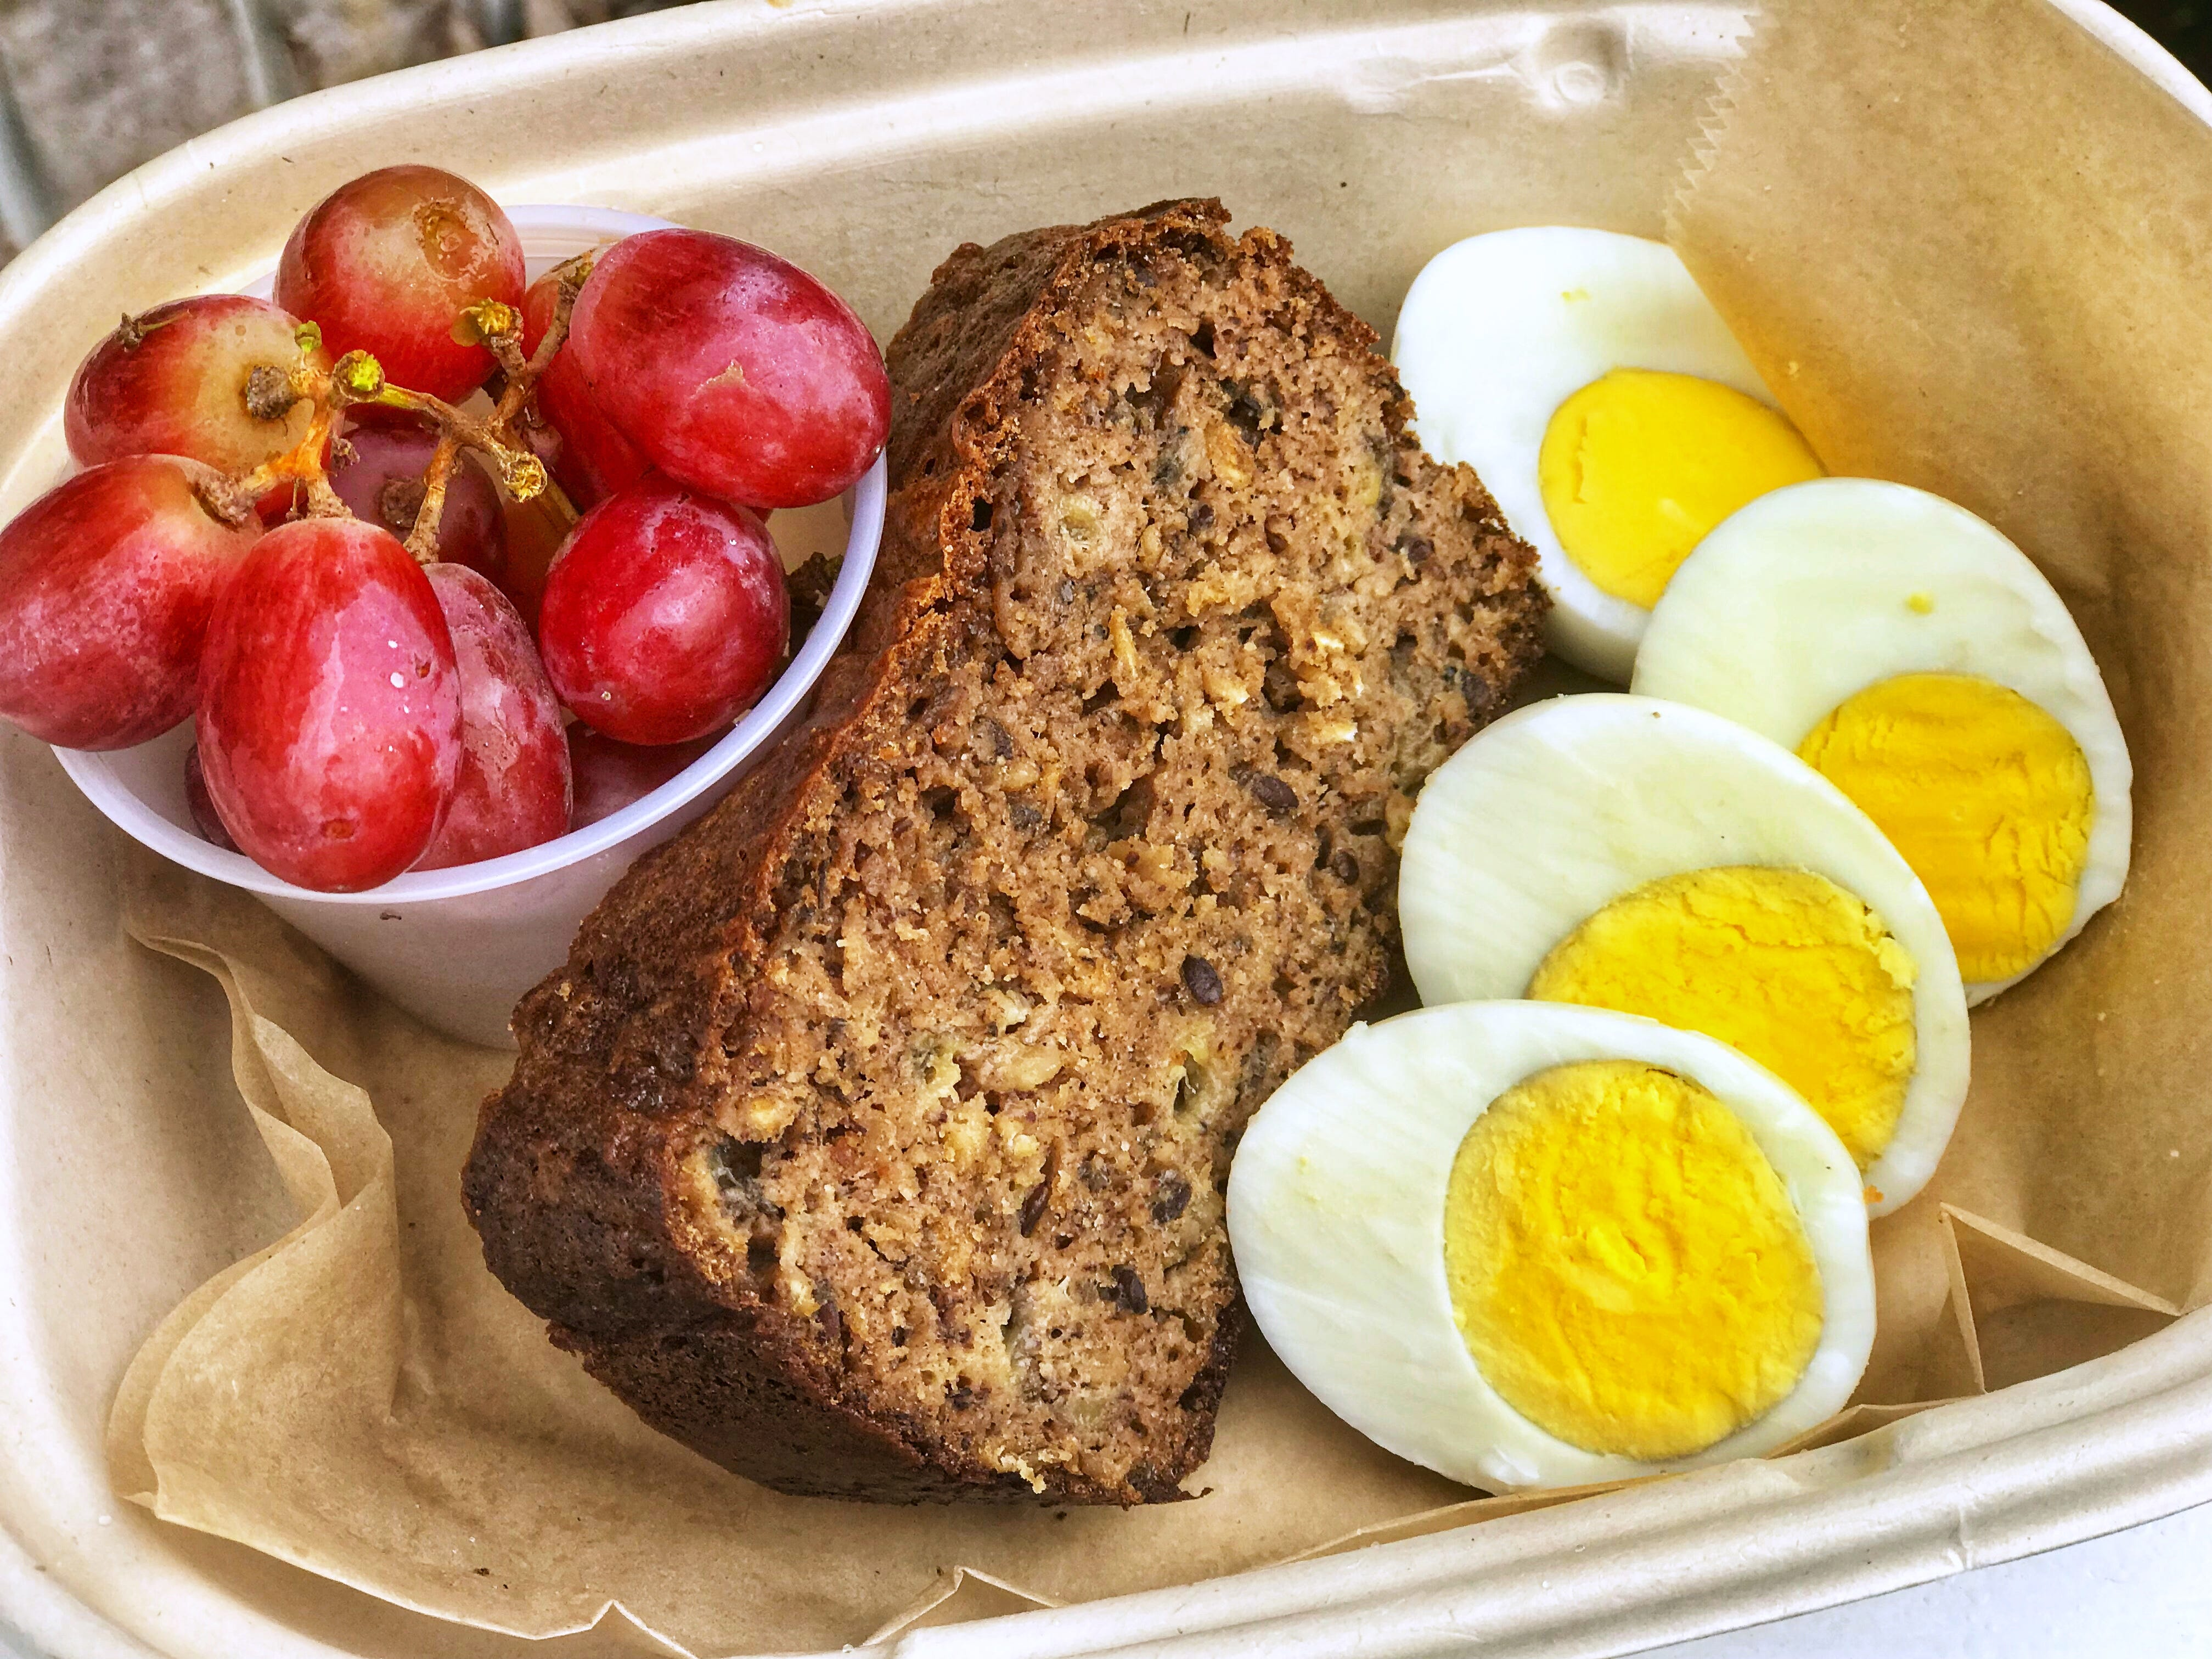 Fittest Kitchen has launched a meal prep service, which includes menu items like the banana bread.